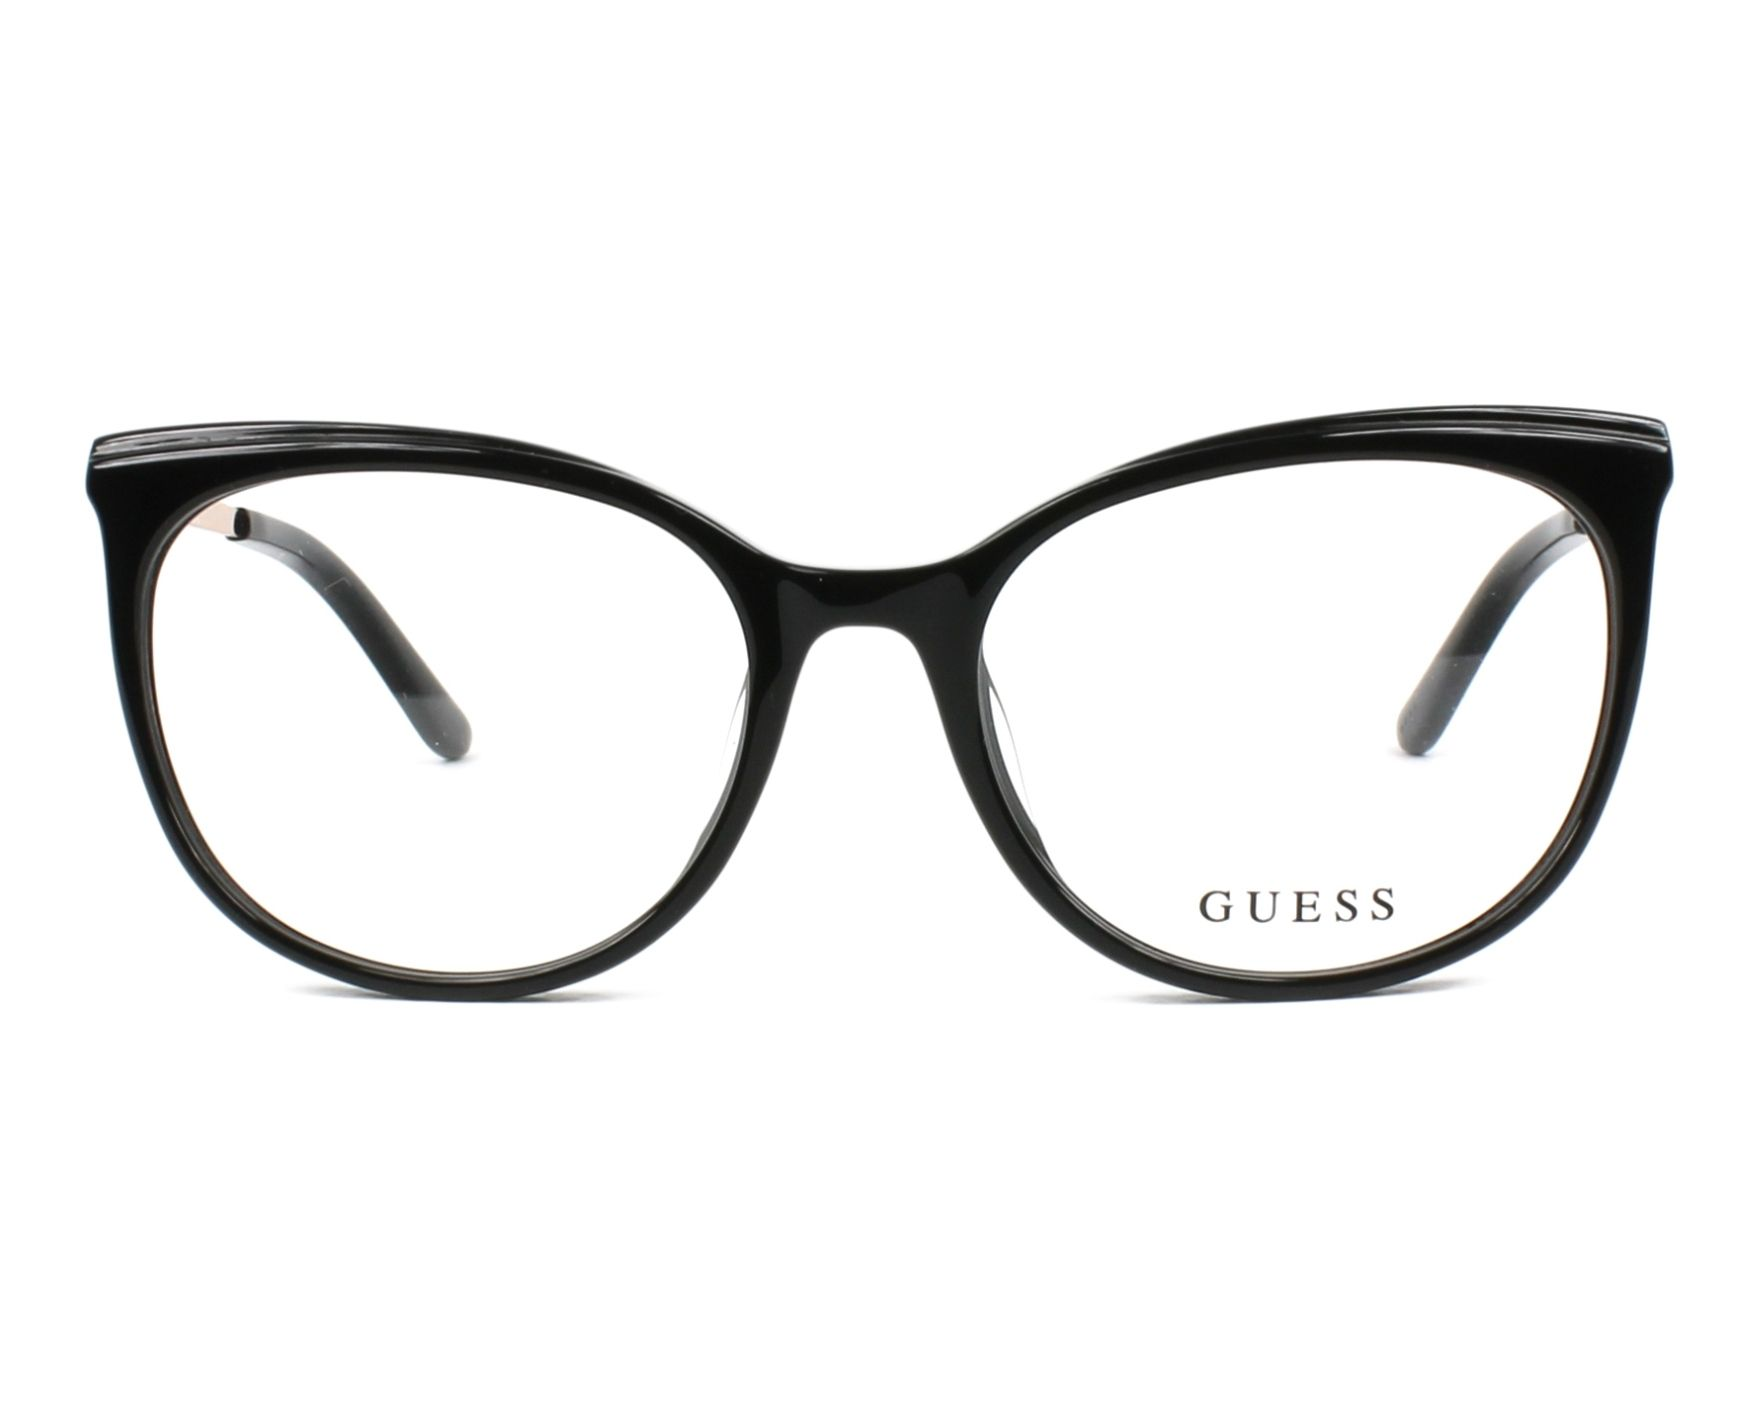 eyeglasses Guess GU-2640 005 53-17 Black Gold front view